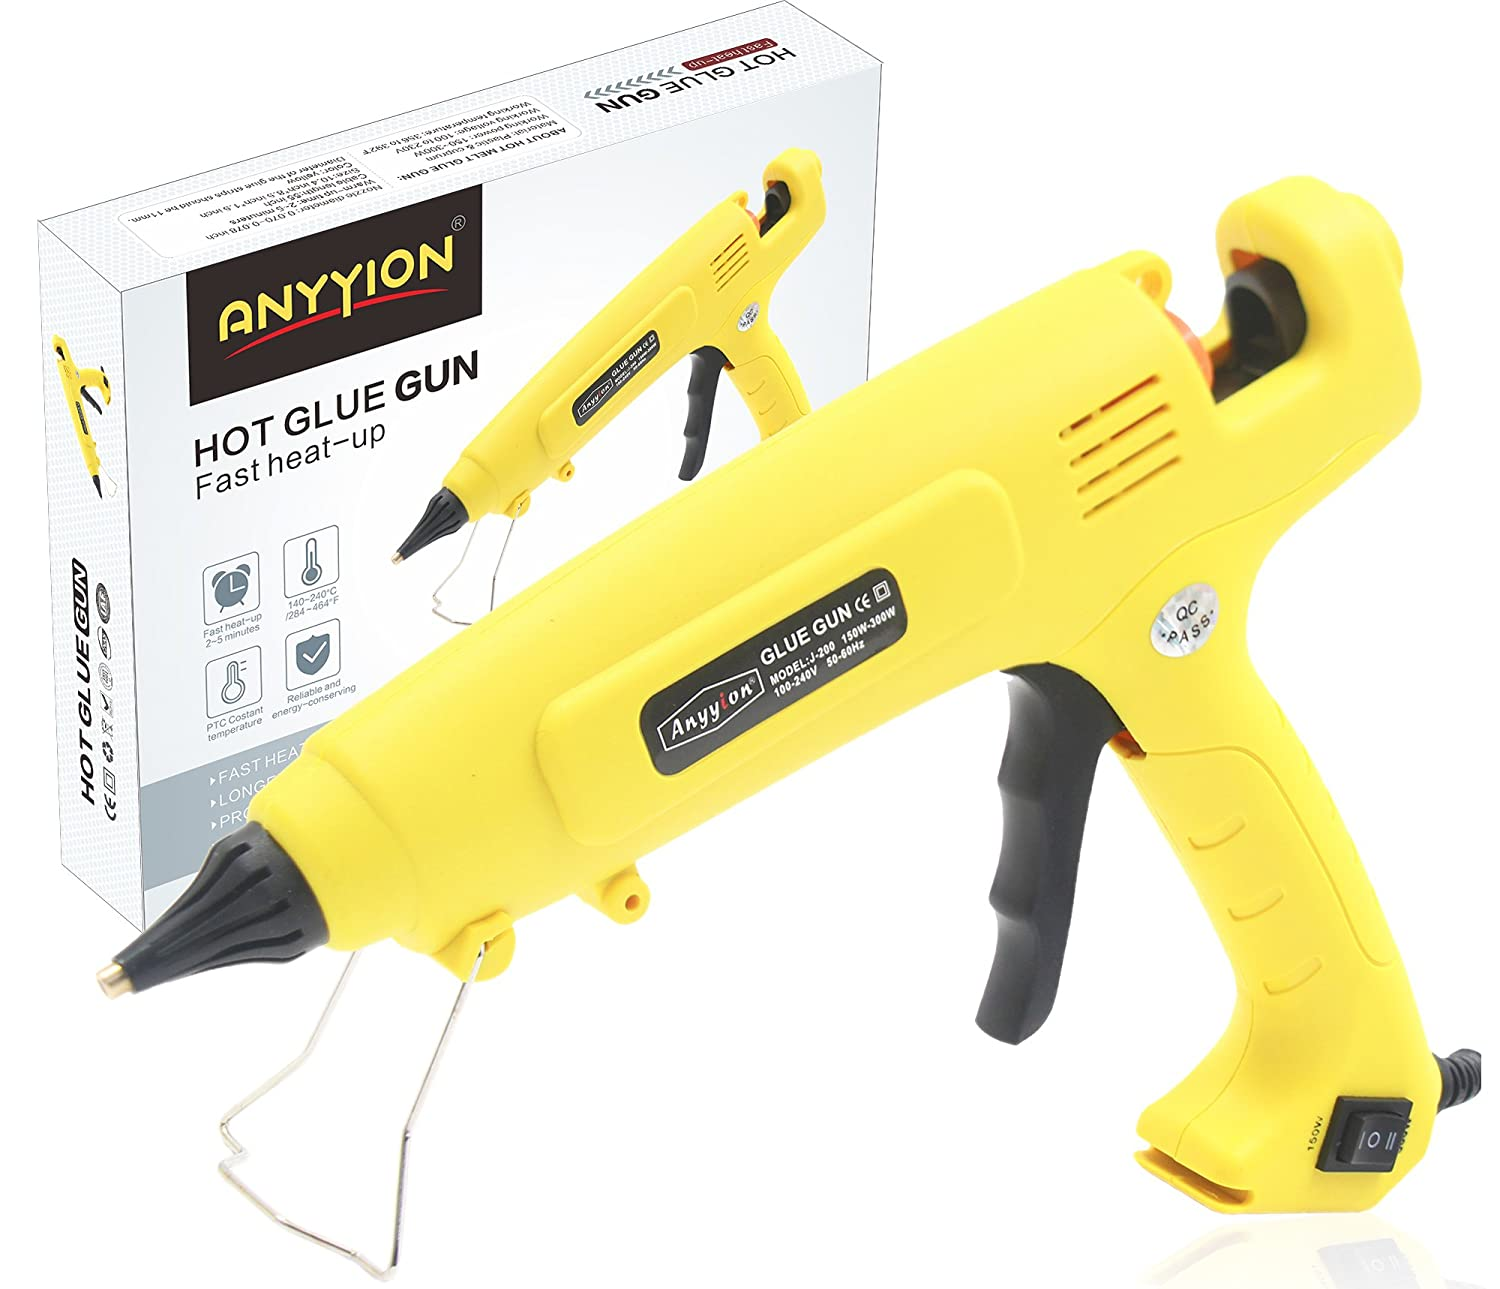 AI 300 Watt Hot Glue Gun ?High Output Professional Adjustable Switch High Temperature Industrial Adhesive Hot Melt Glue Guns ; Yellow Anyyion 4336847608